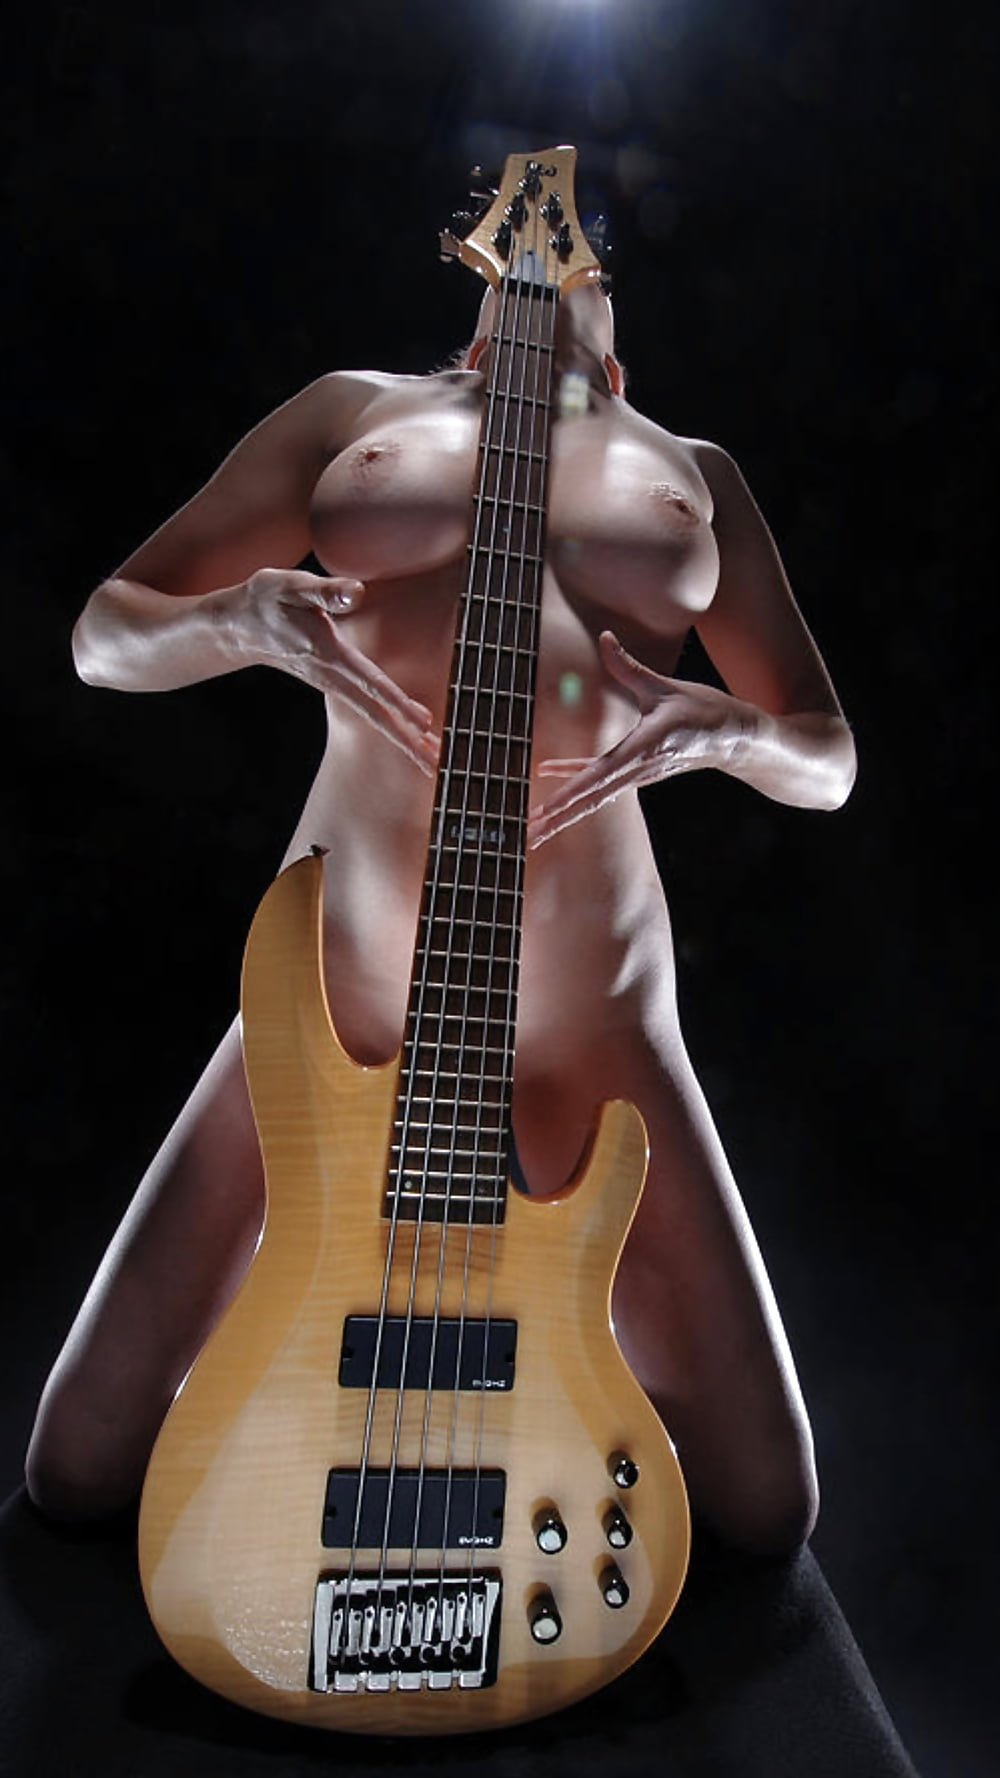 black-women-playing-guitar-naked-larger-bottoms-mature